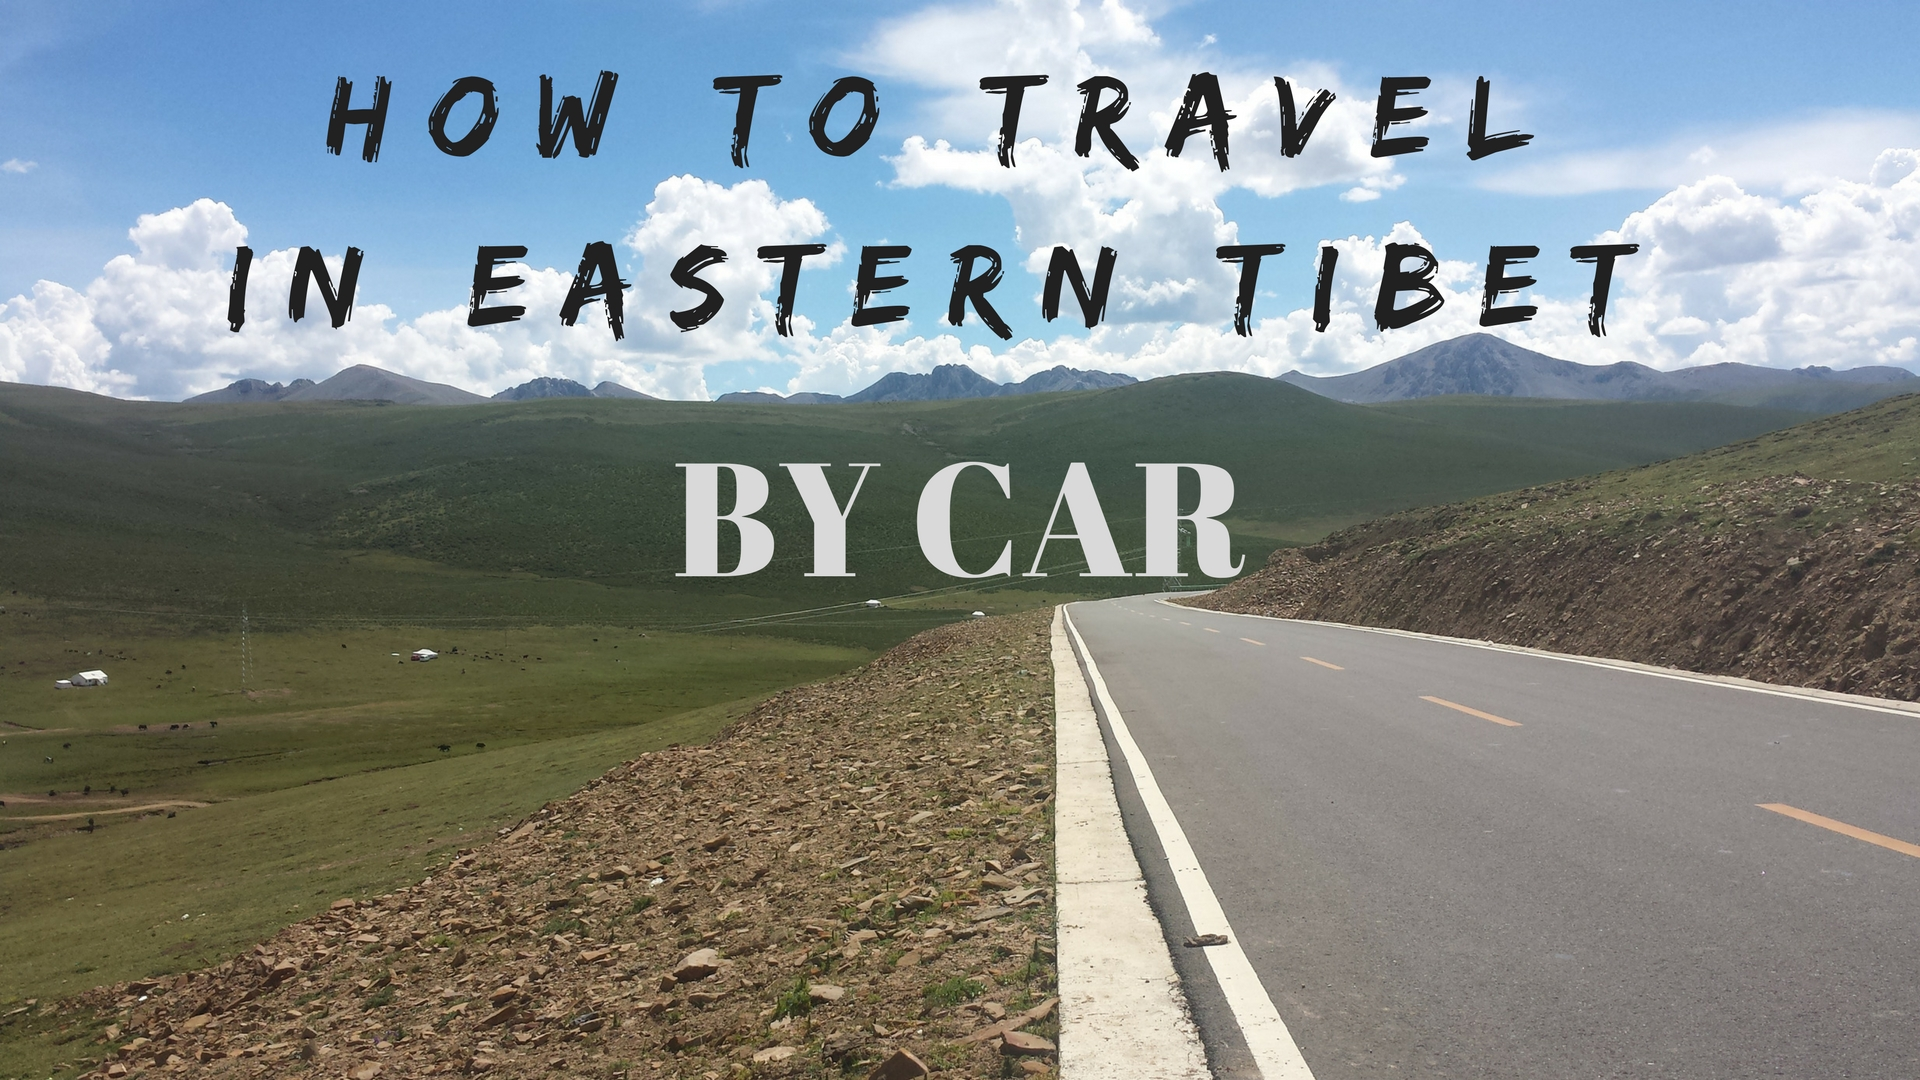 HOW TO TRAVEL IN EASTERN TIBET BY CAR